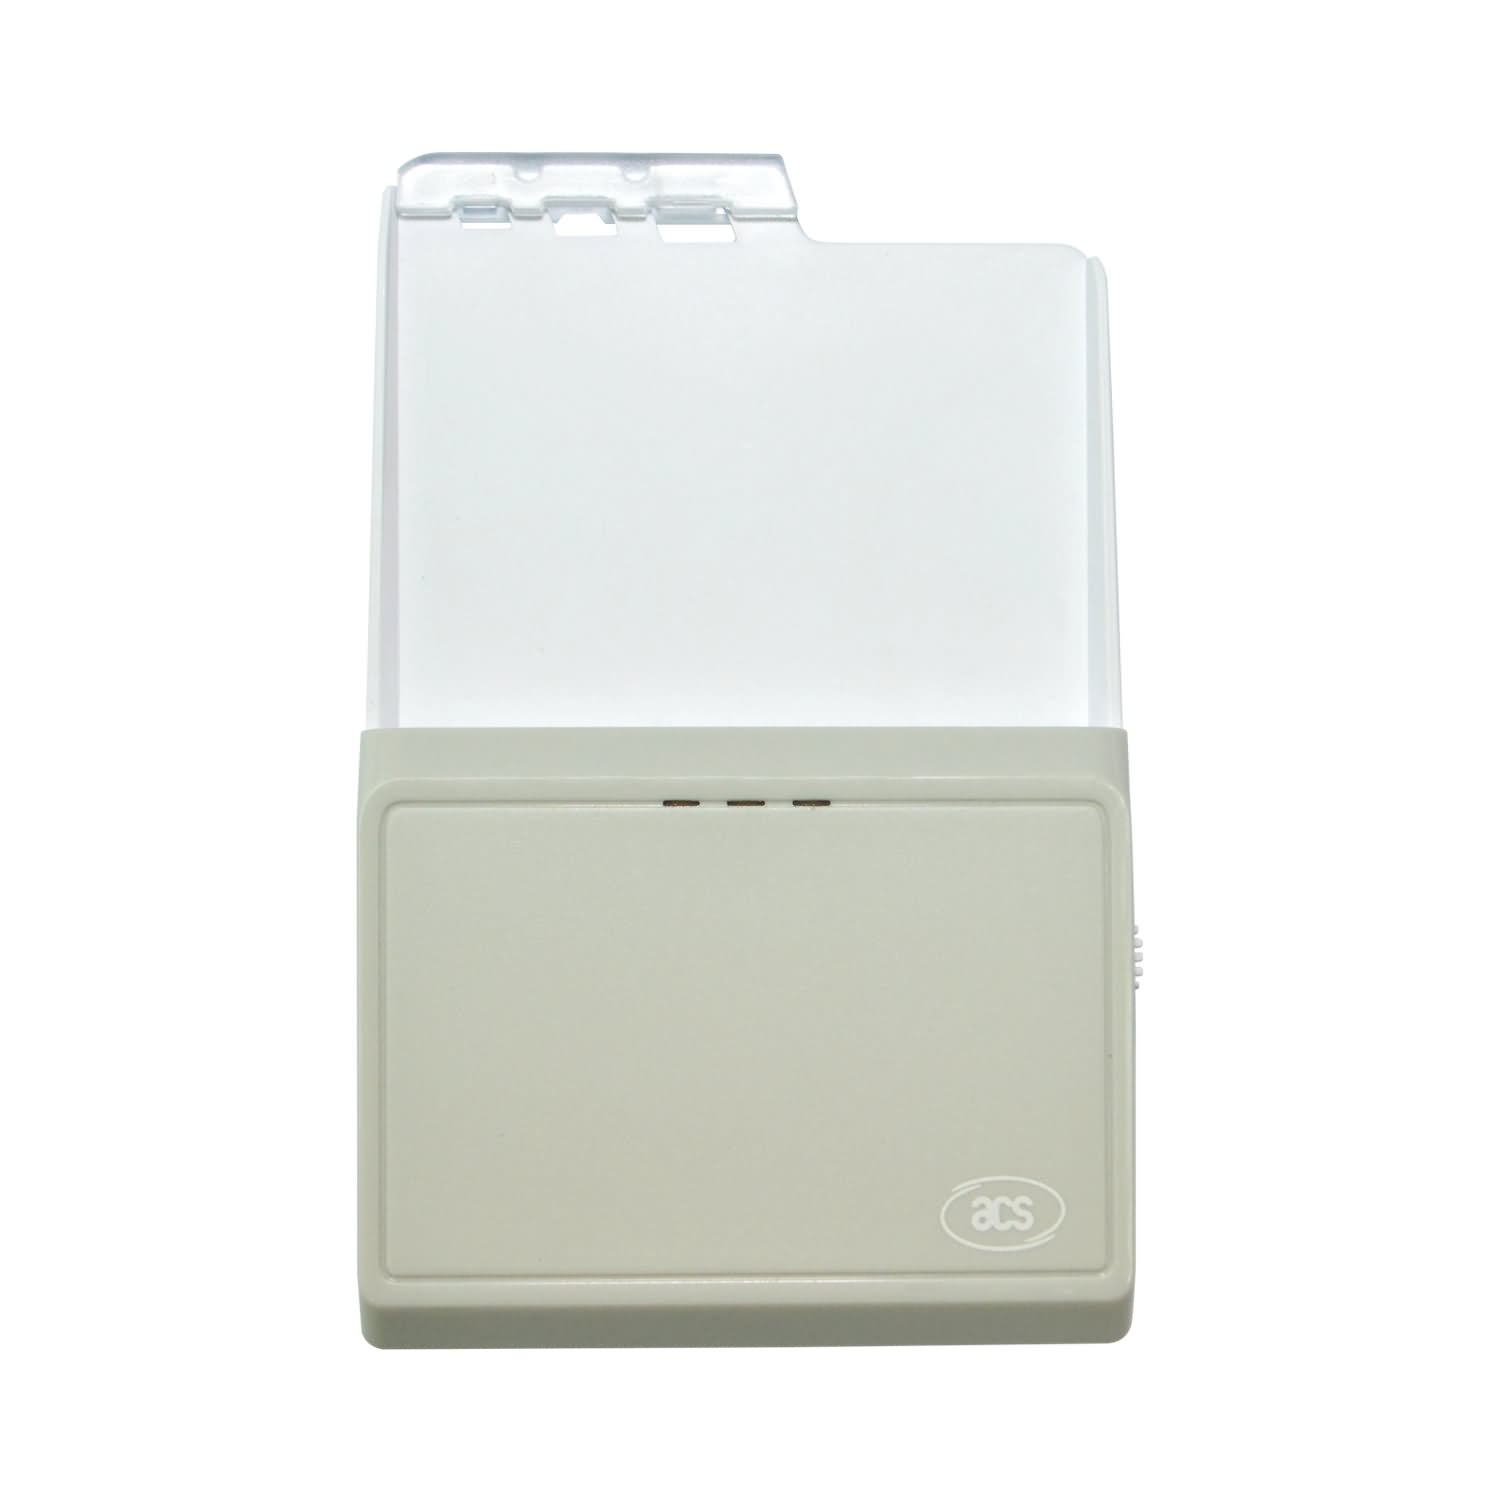 ACR3901U-S1 ACS Secure Bluetooth Contact Card Reader Featured Image